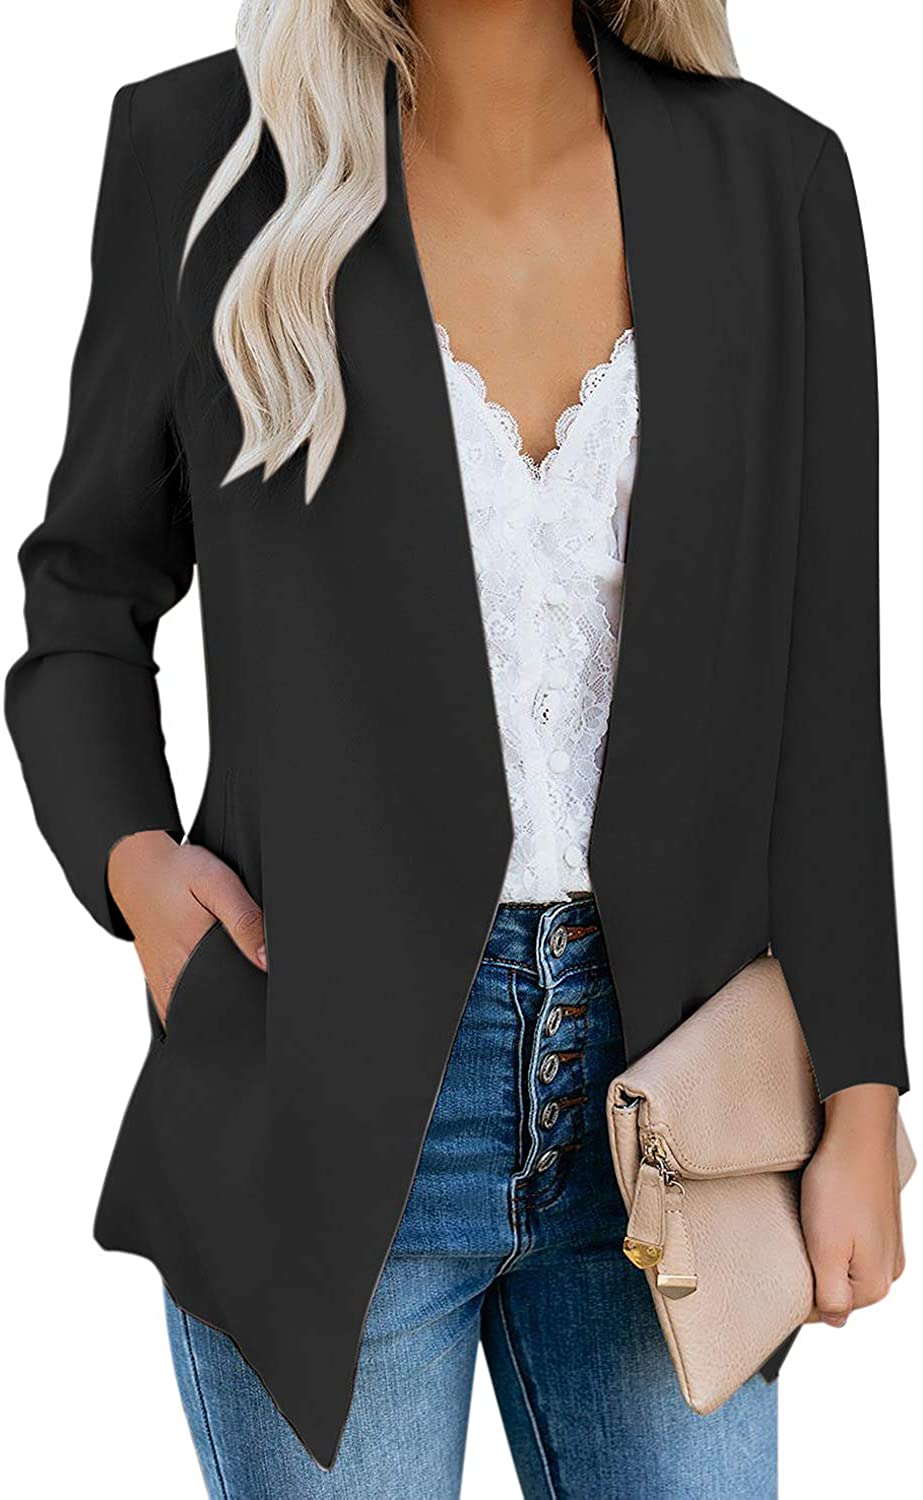 GRAPENT Women's Open Front Business Casual Pocket Work Office Blazer Jacket Suit